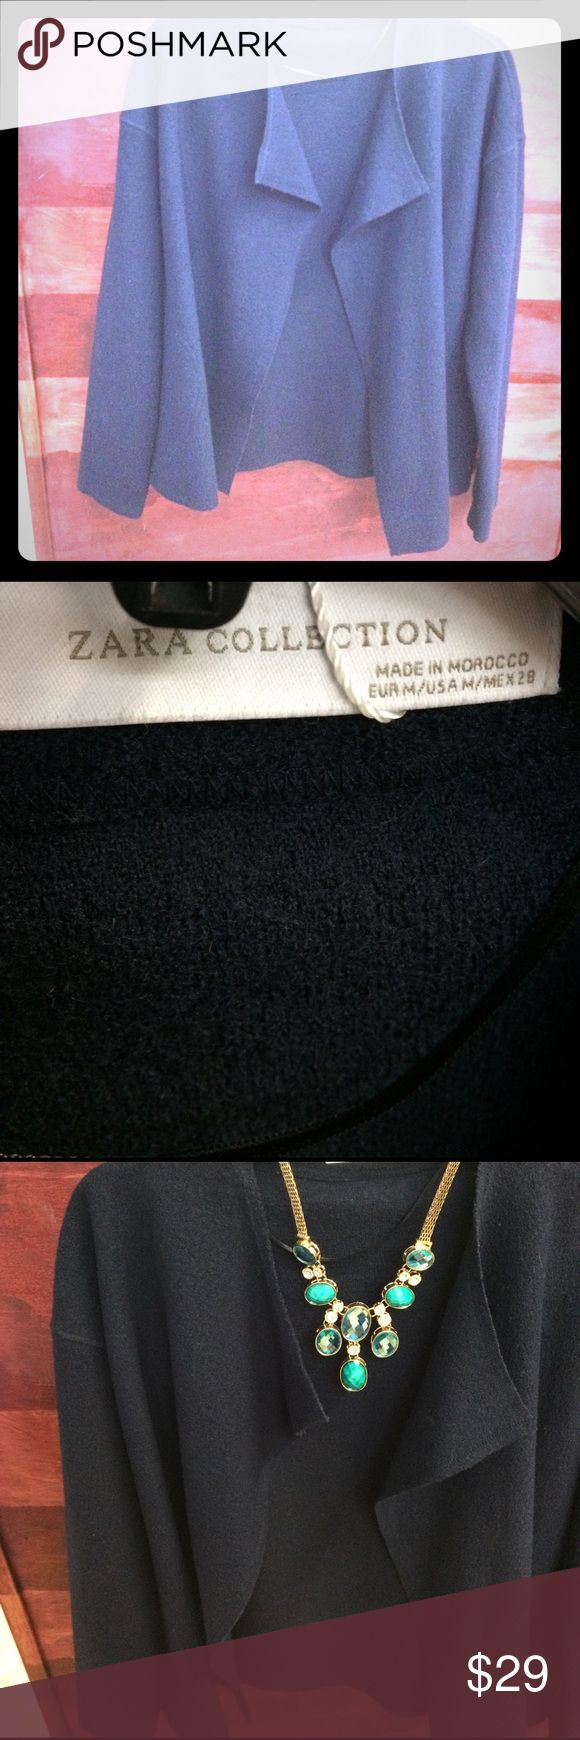 Navy blue Zara cardigan 3 seasons navy blue cardigan. Great combo with bright colors and a skinny jeans or boyfriend wkend jeans. NWOT Zara Jackets & Coats Blazers